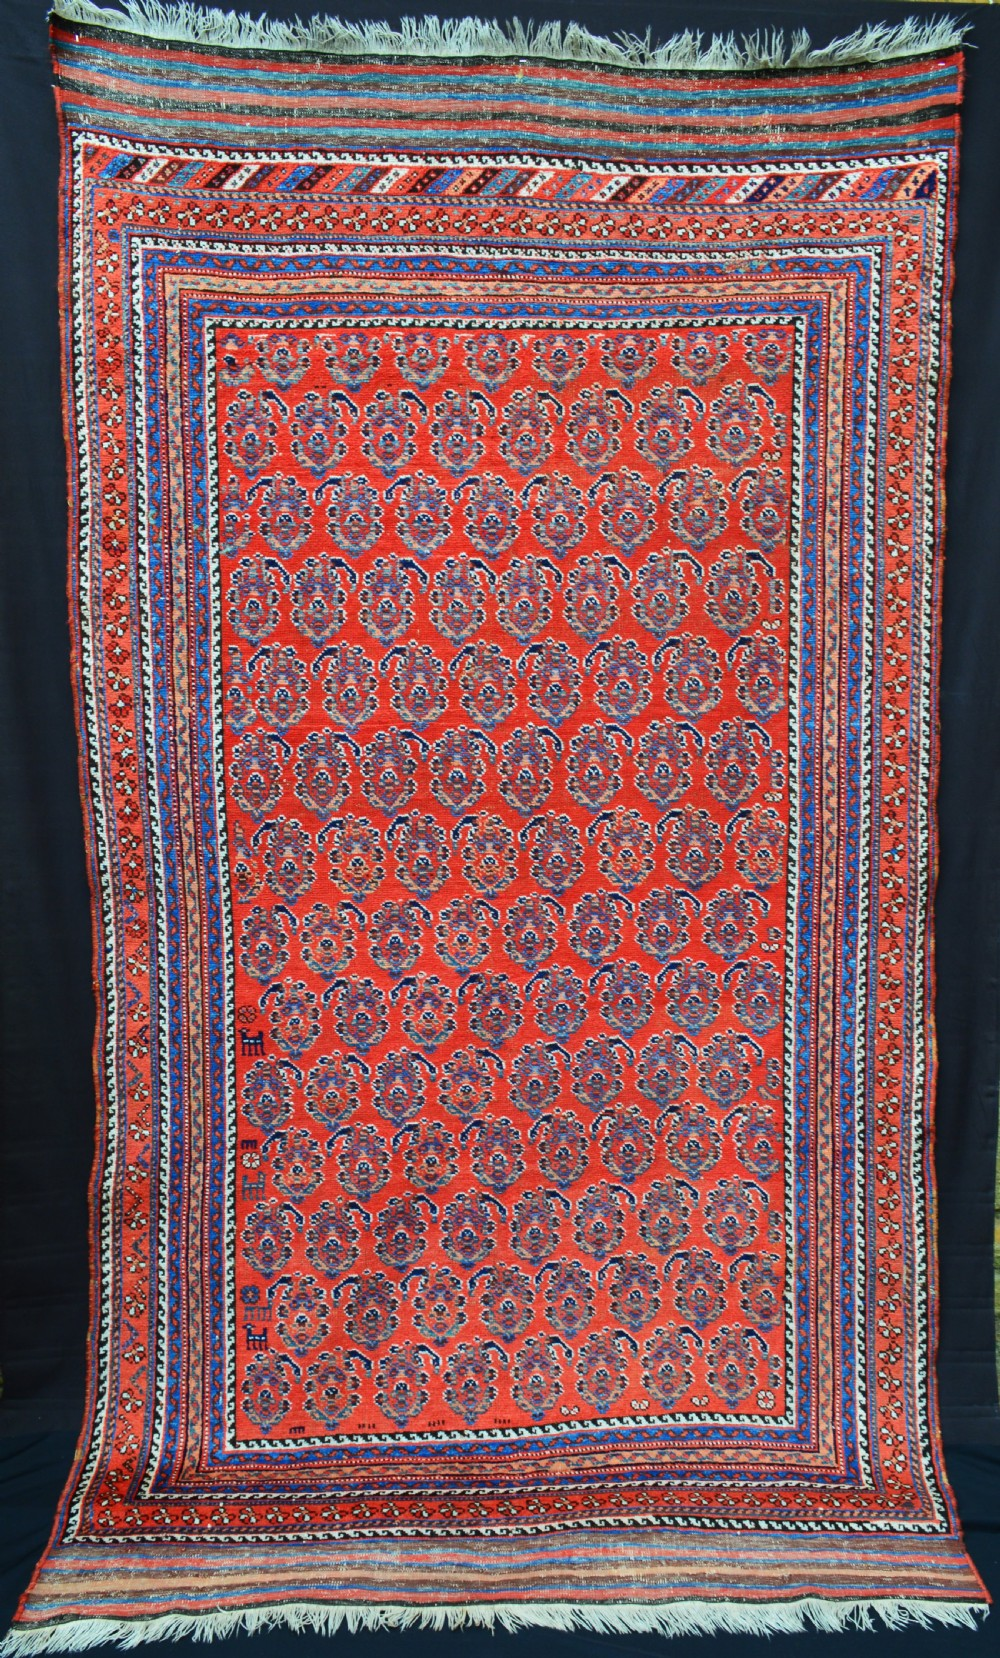 antique afshar carpet kerman province southern persia